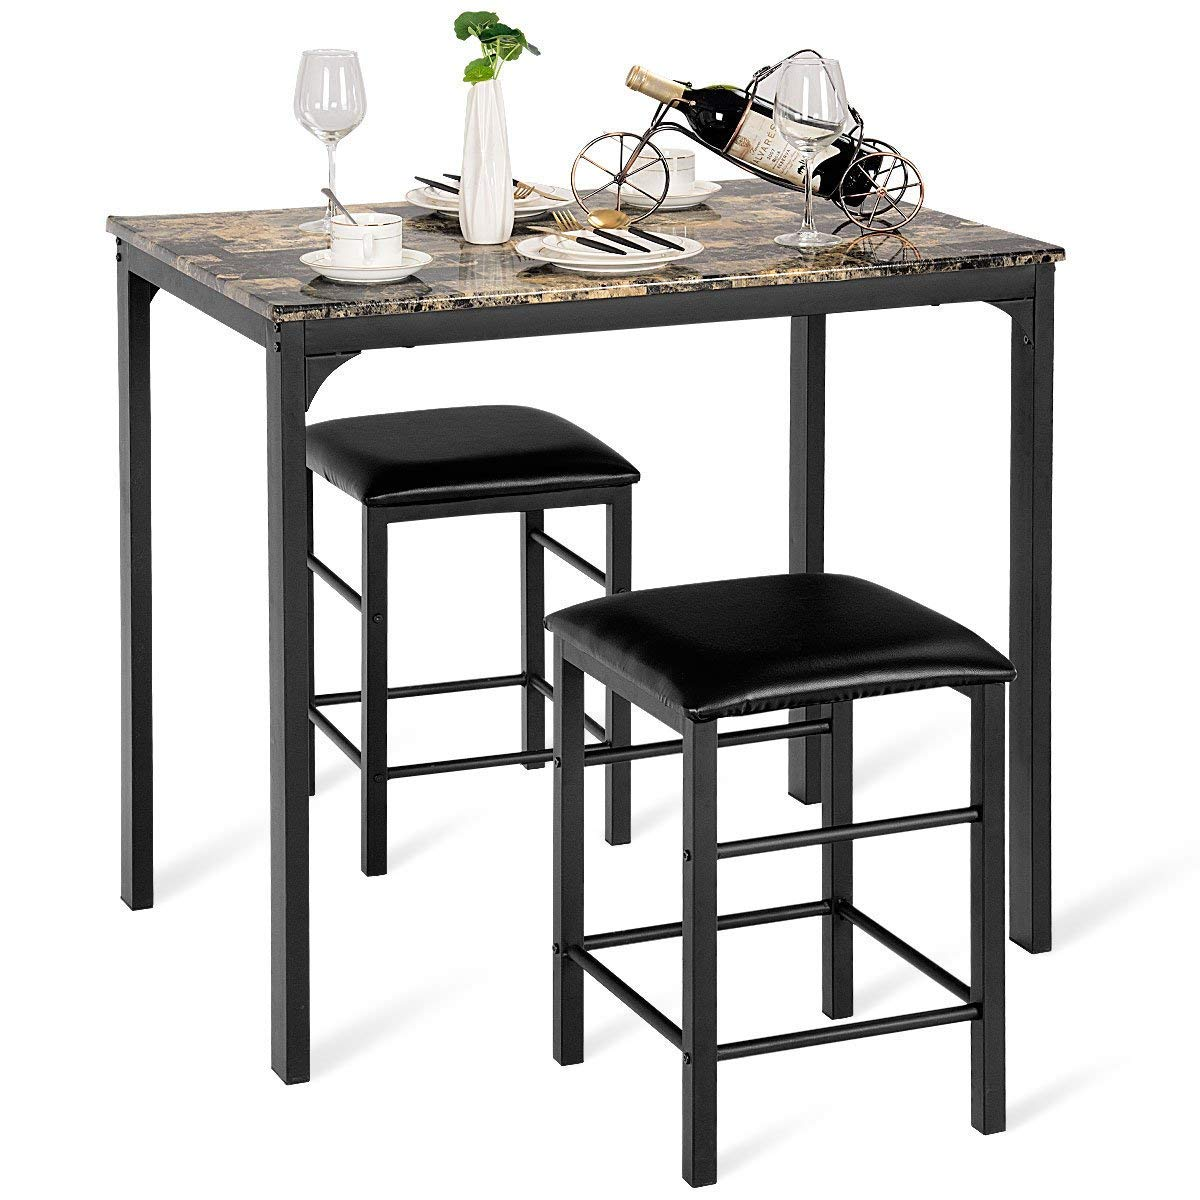 Casart 3 PCS Table Set Faux Marble Counter Home Kitchen Bar Dining Table with 2 Stools